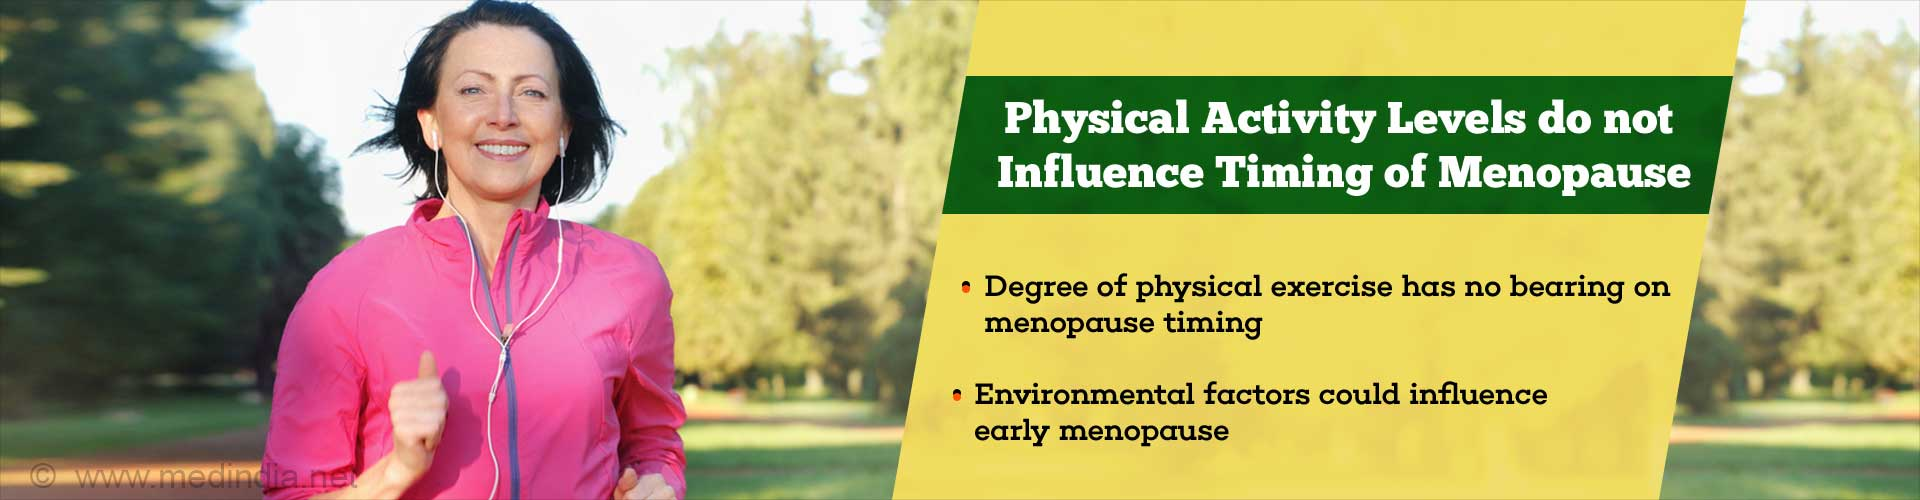 Menopause Timing is Not Affected by Physical Activity